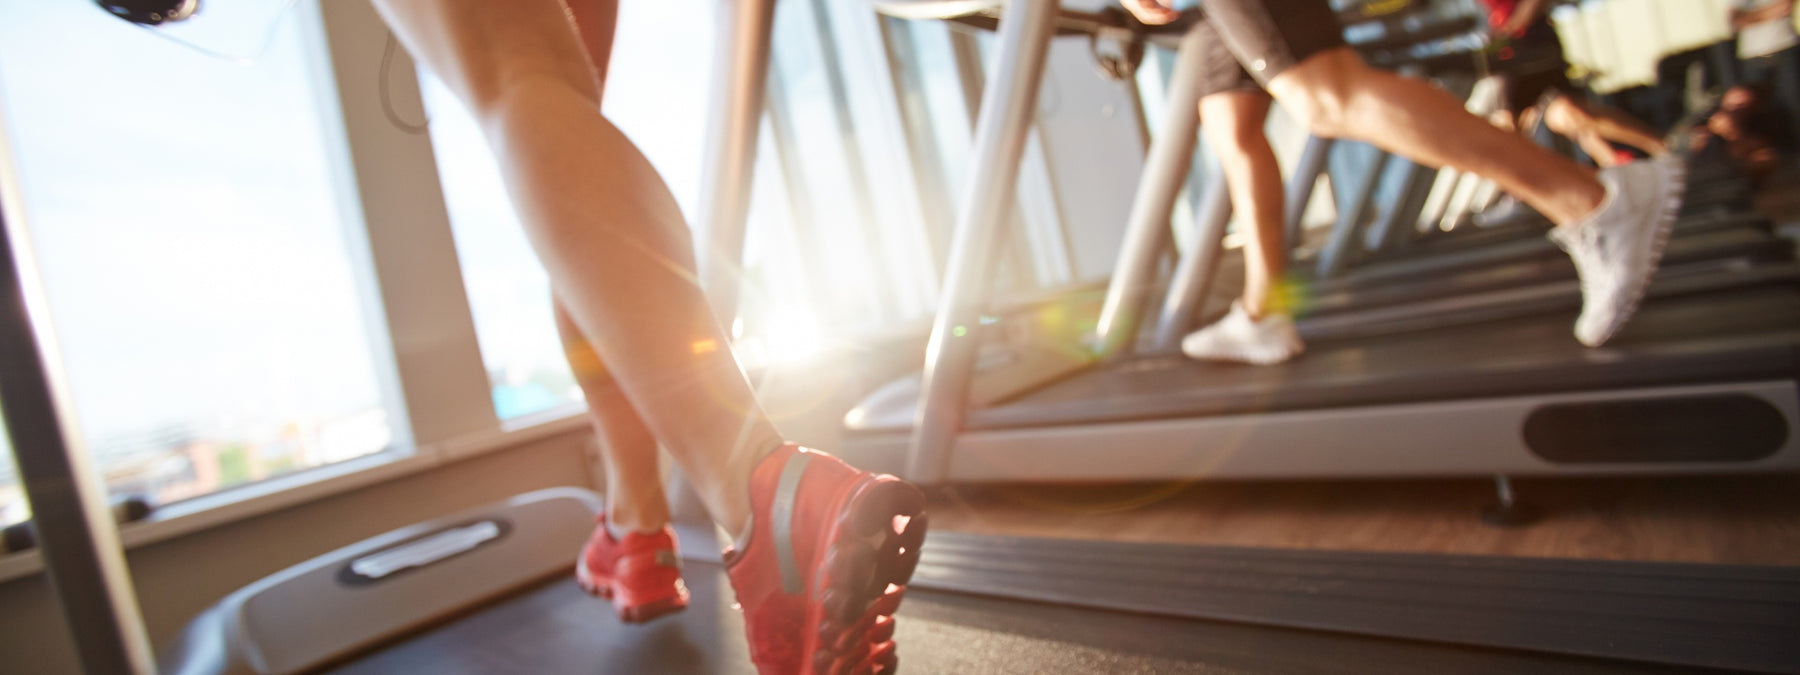 Is Fasted Cardio the Best for Burning Fat?